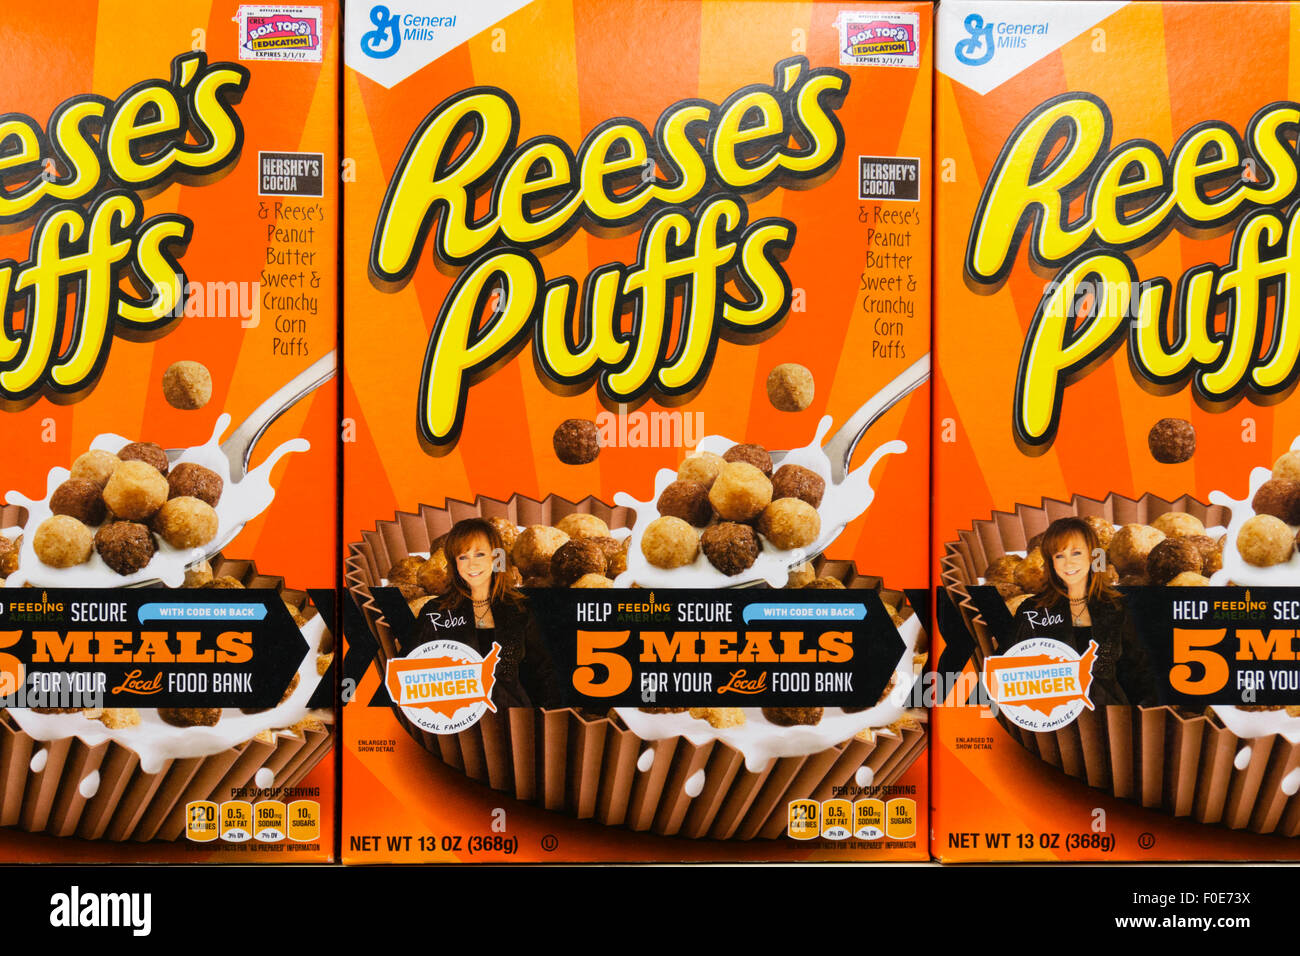 Reese's Puffs with Feeding America and Outnumber Hunger logos. - Stock Image